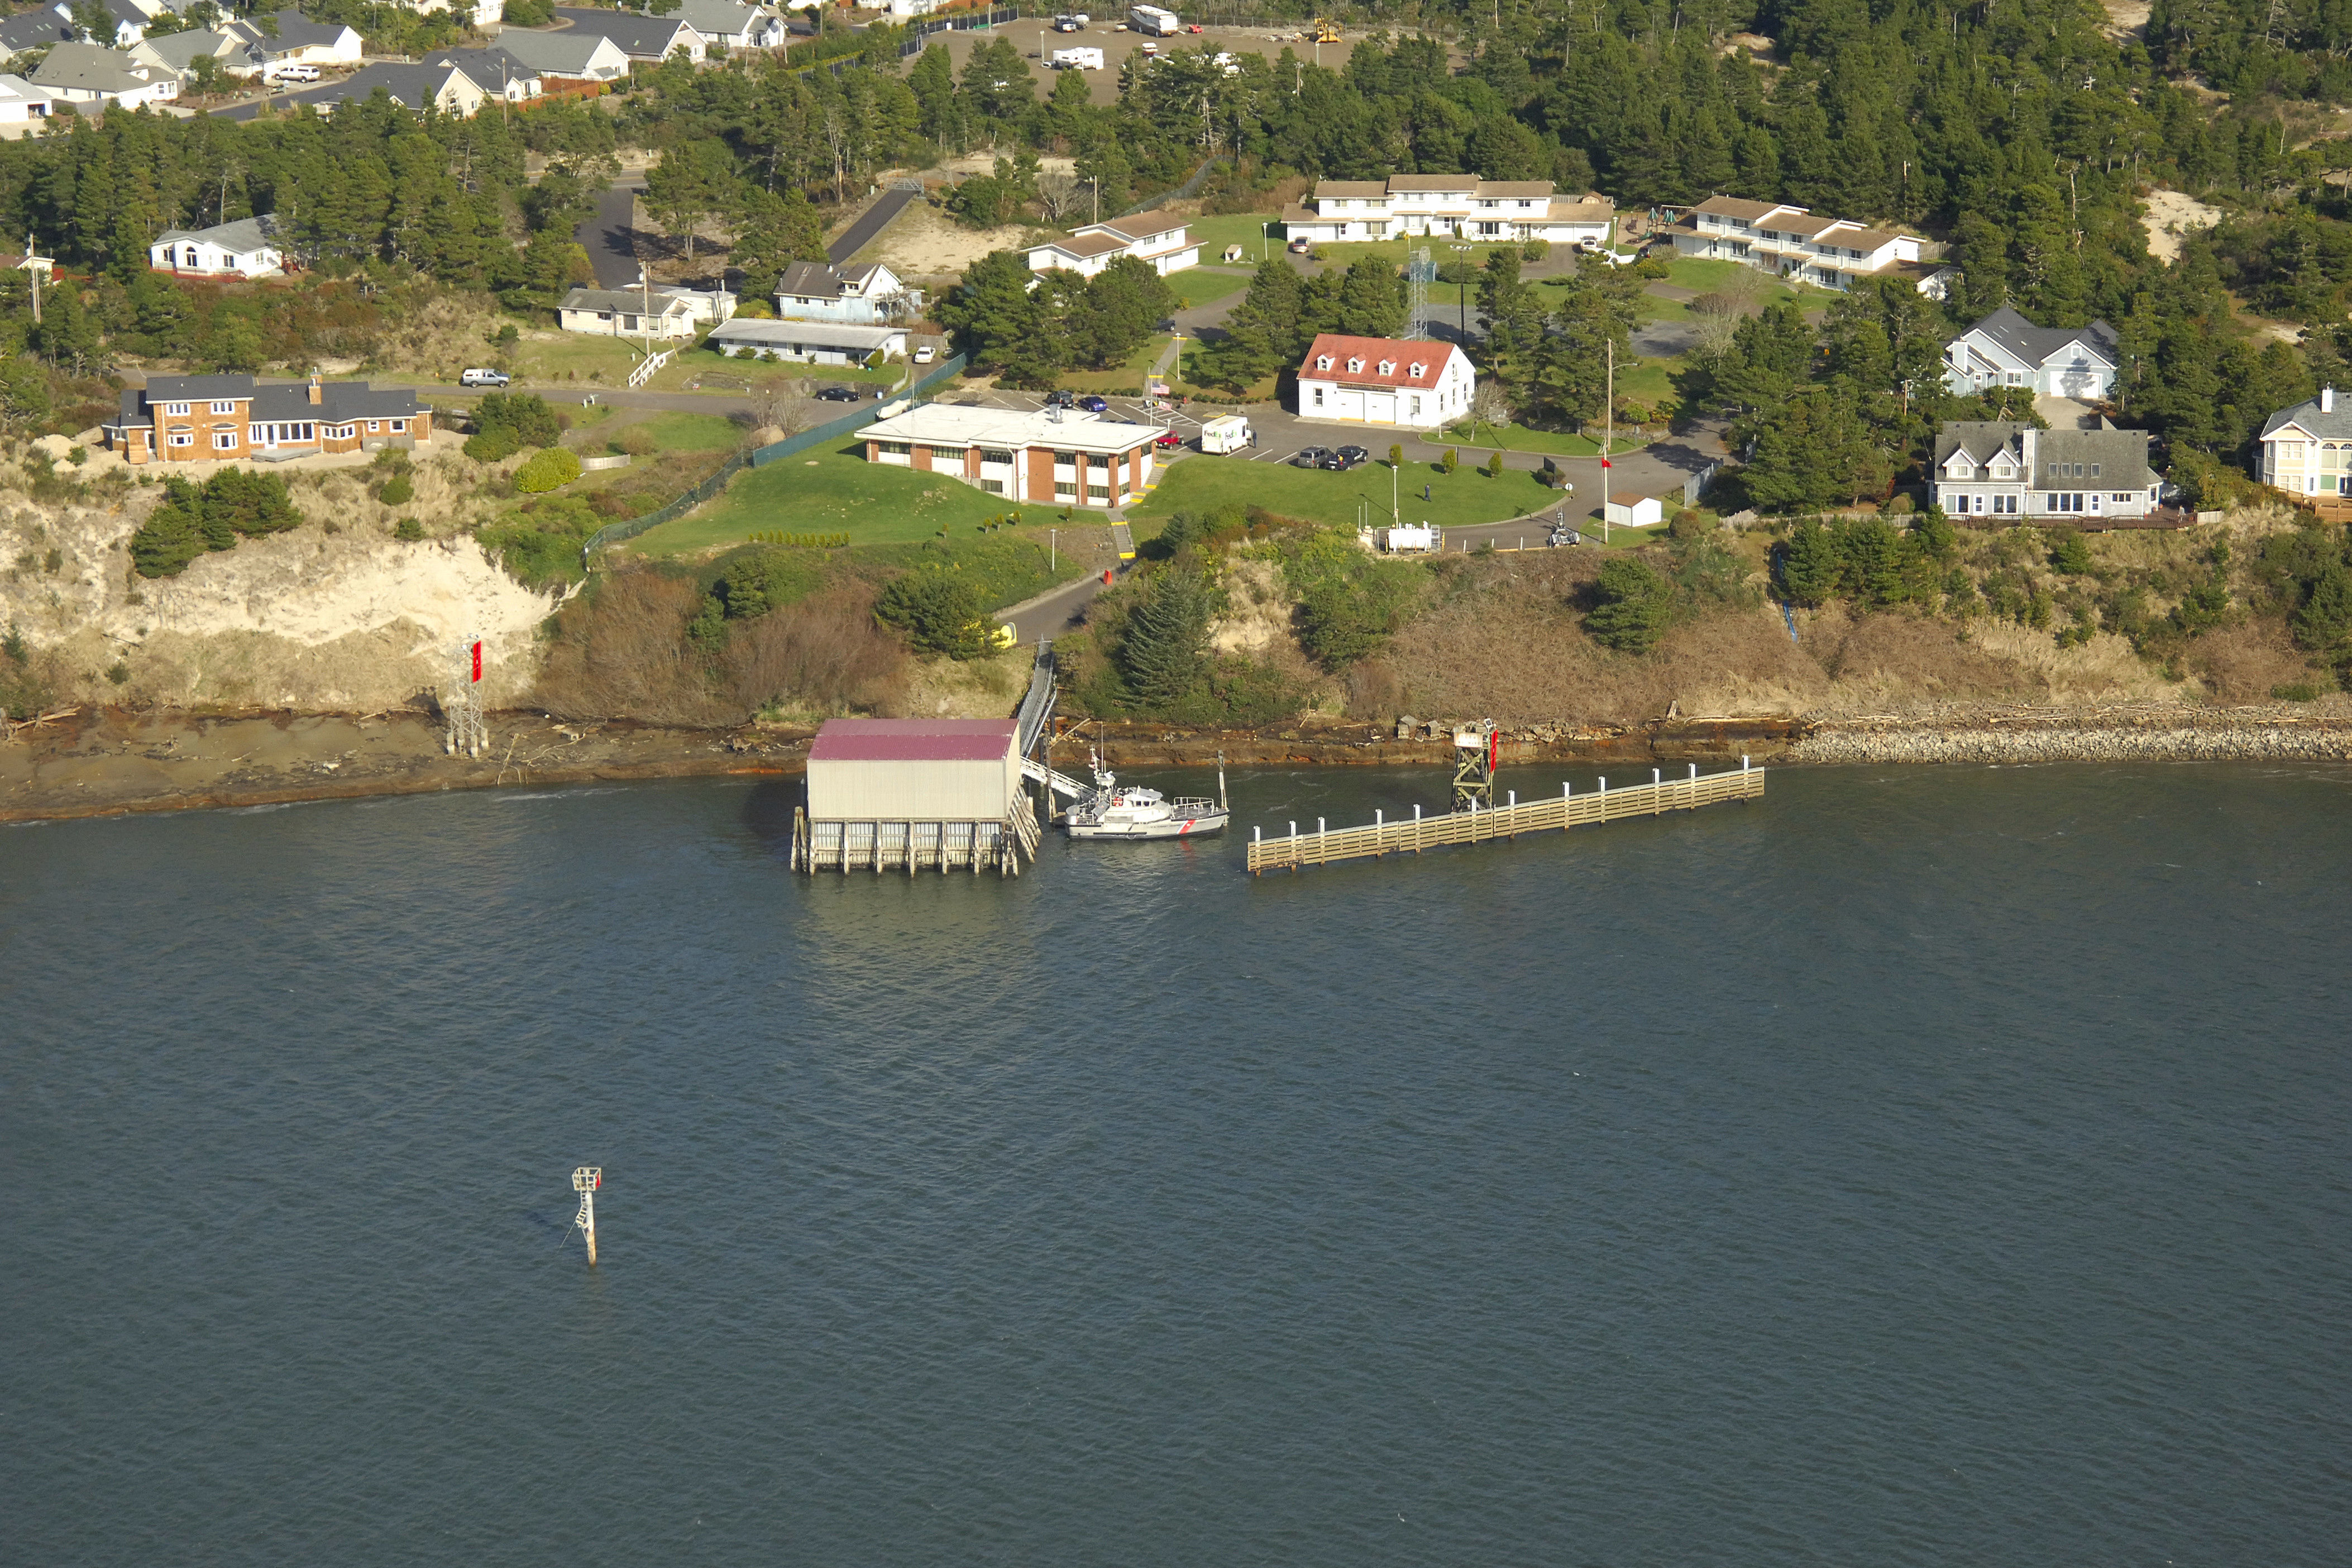 Uscg Siuslaw River Landmark In Florence Or United States